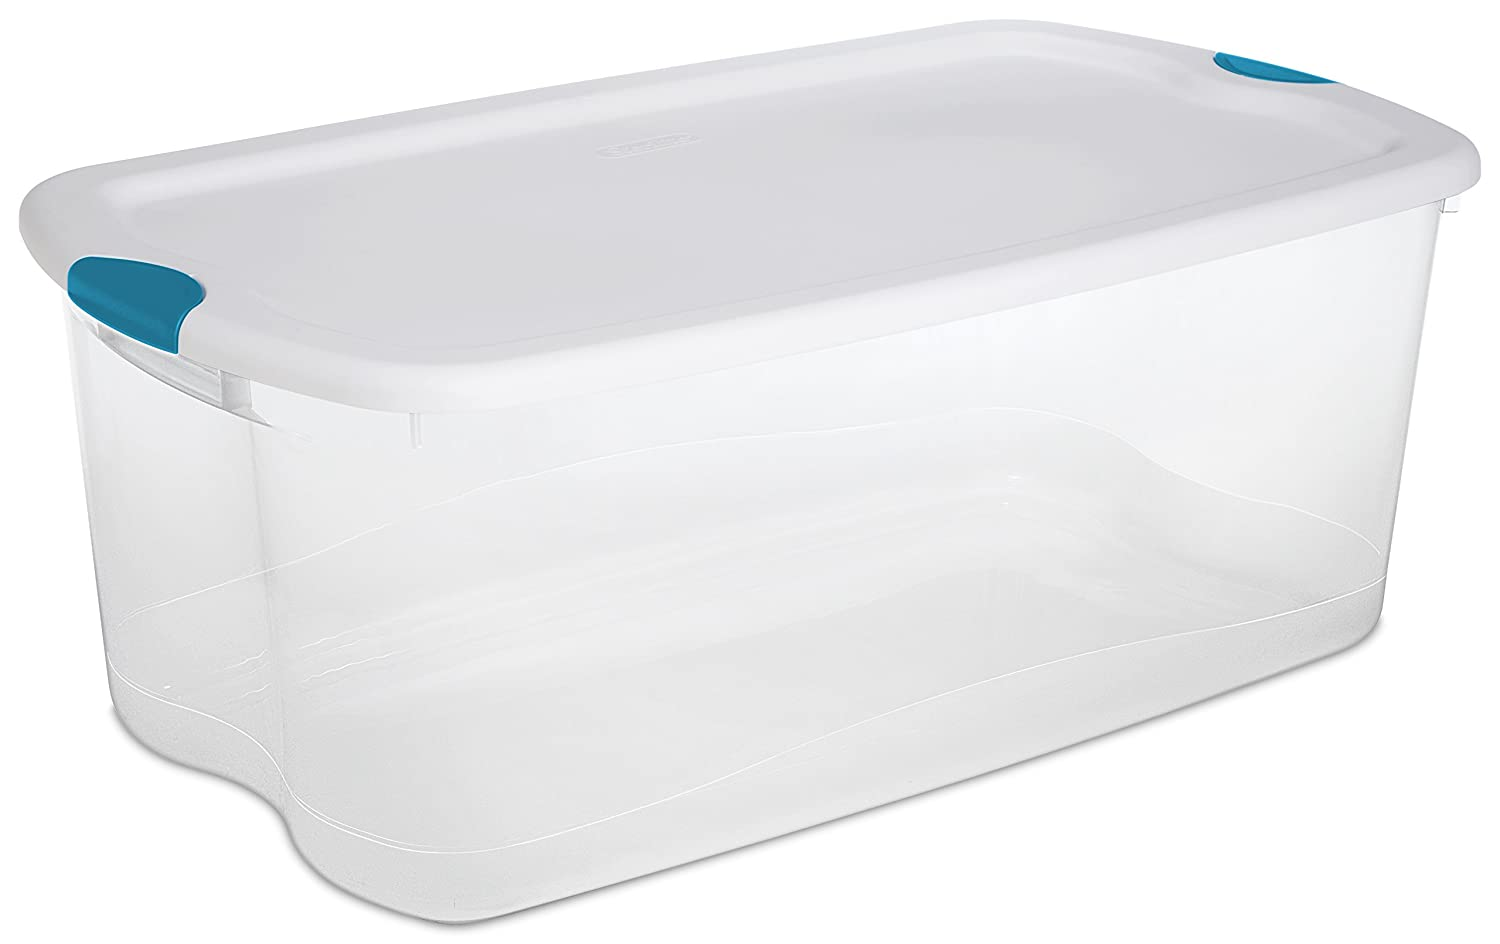 Amazon.com STERILITE 18898004 106 Quart/100 Liter Latch Box White Lid Clear Base Blue Aquarium Latches 4-Pack Home u0026 Kitchen  sc 1 st  Amazon.com & Amazon.com: STERILITE 18898004 106 Quart/100 Liter Latch Box White ...